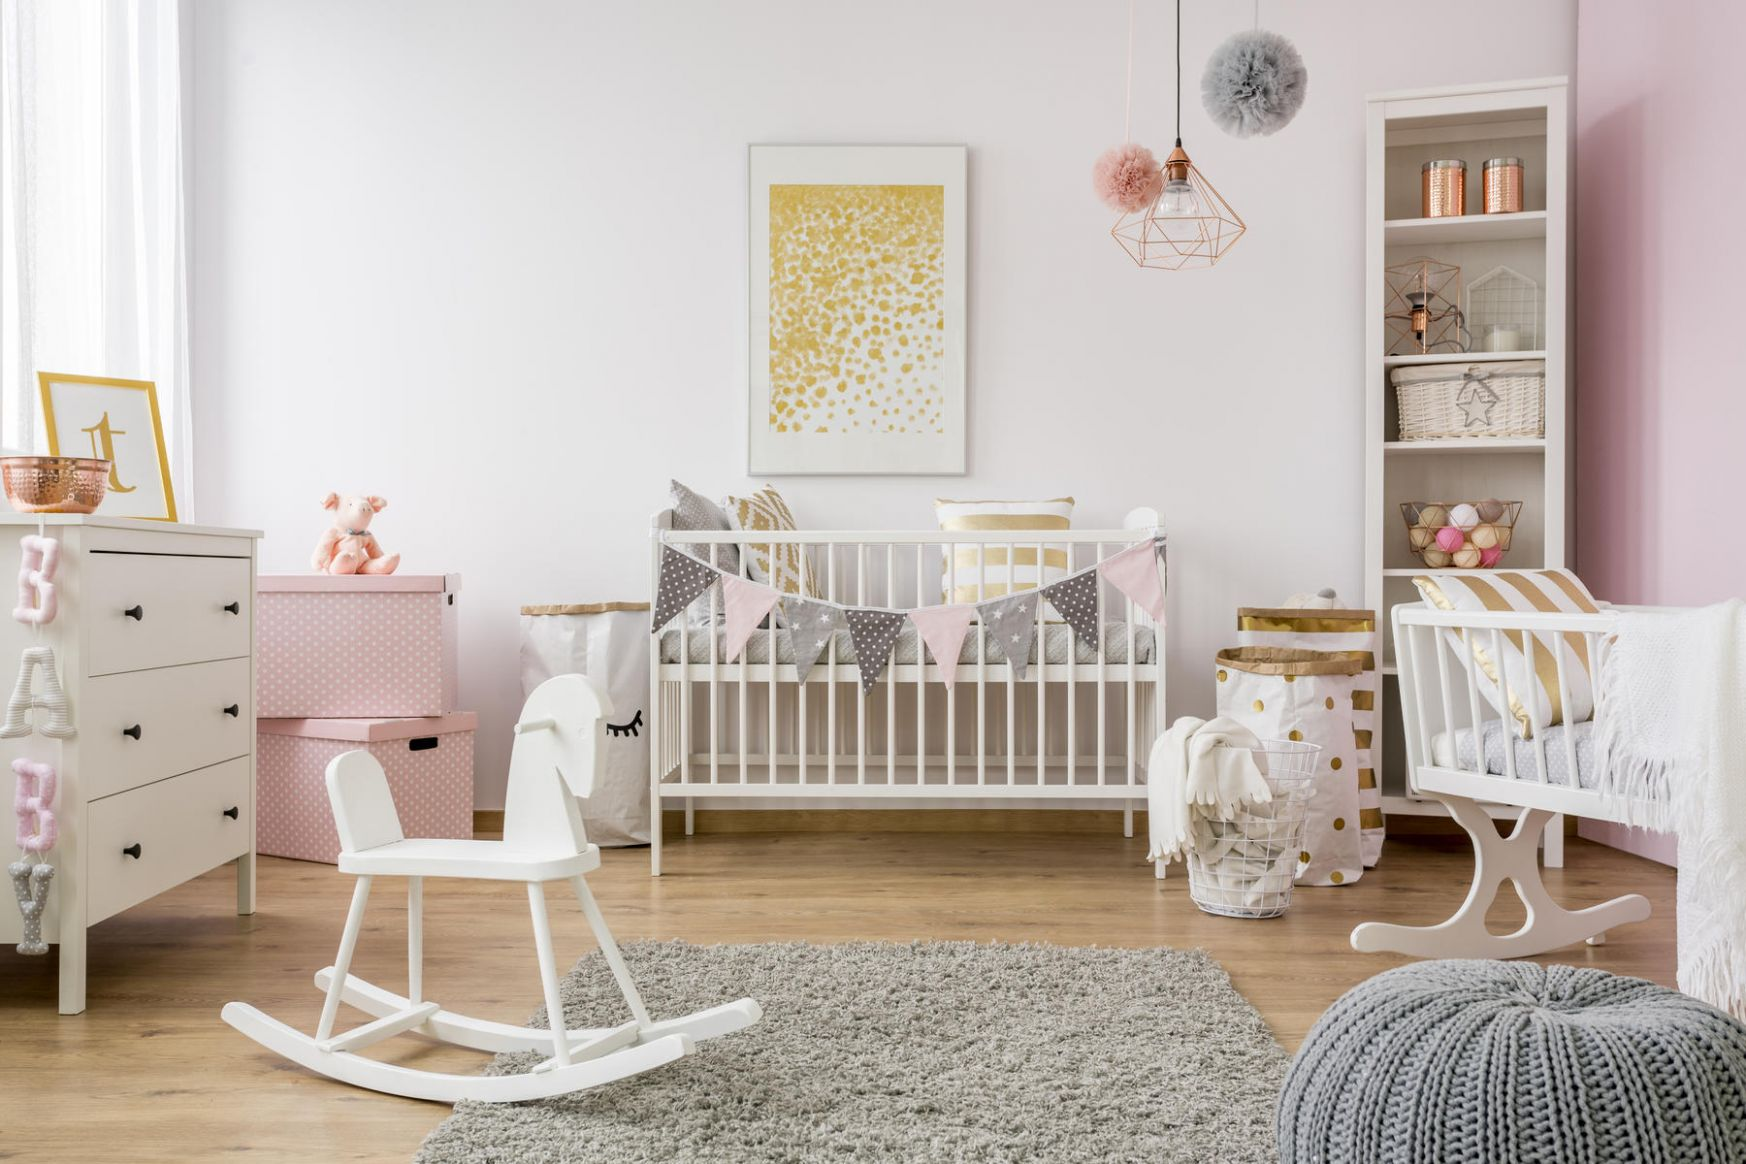 Top Nursery Decor Trends for 11, According to Pinterest | Parents